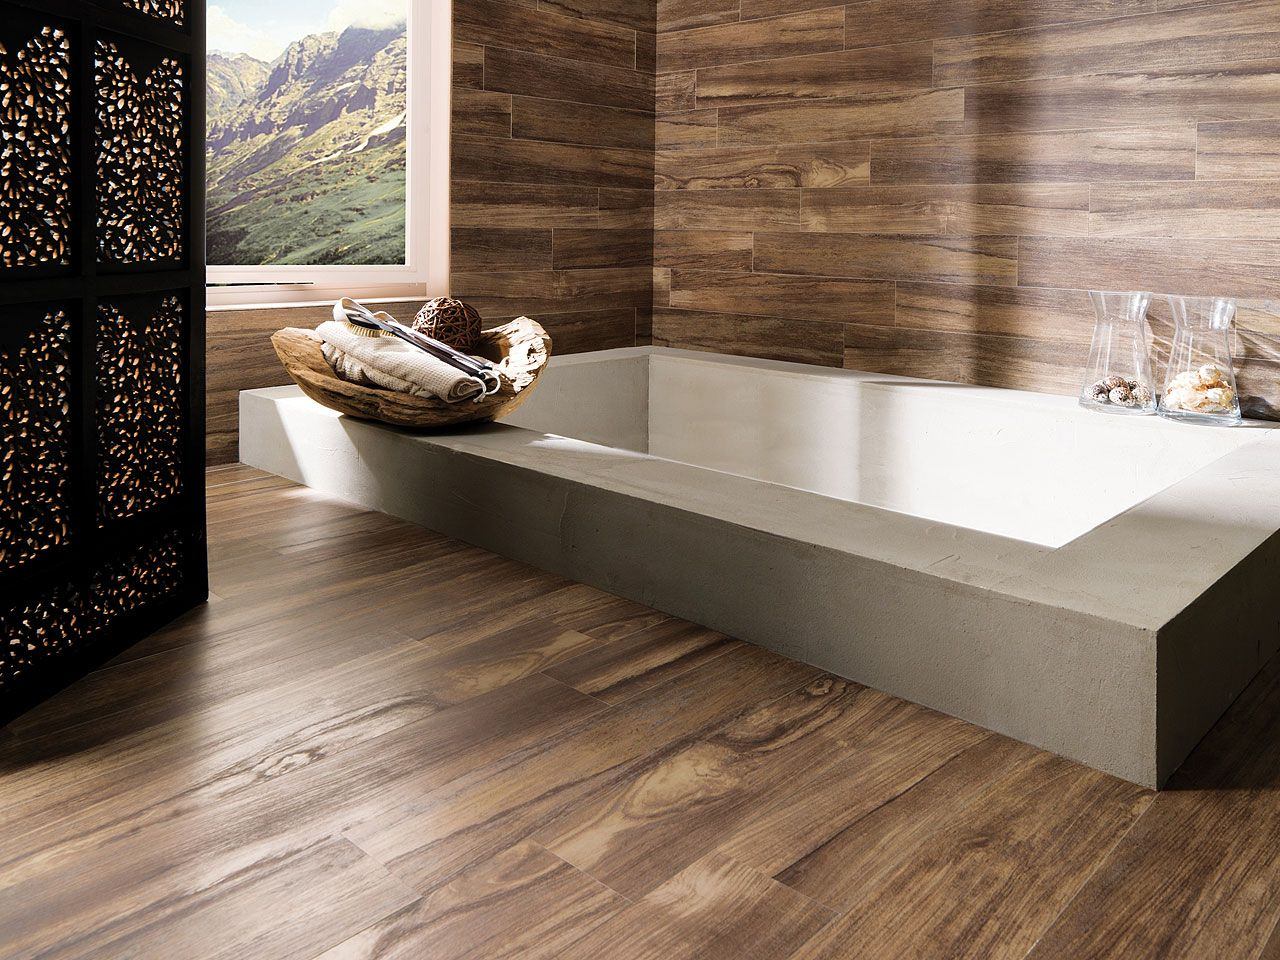 Bathroom Flooring Ceramic Parquet Is Currently A Highly Valued Option When Choosing